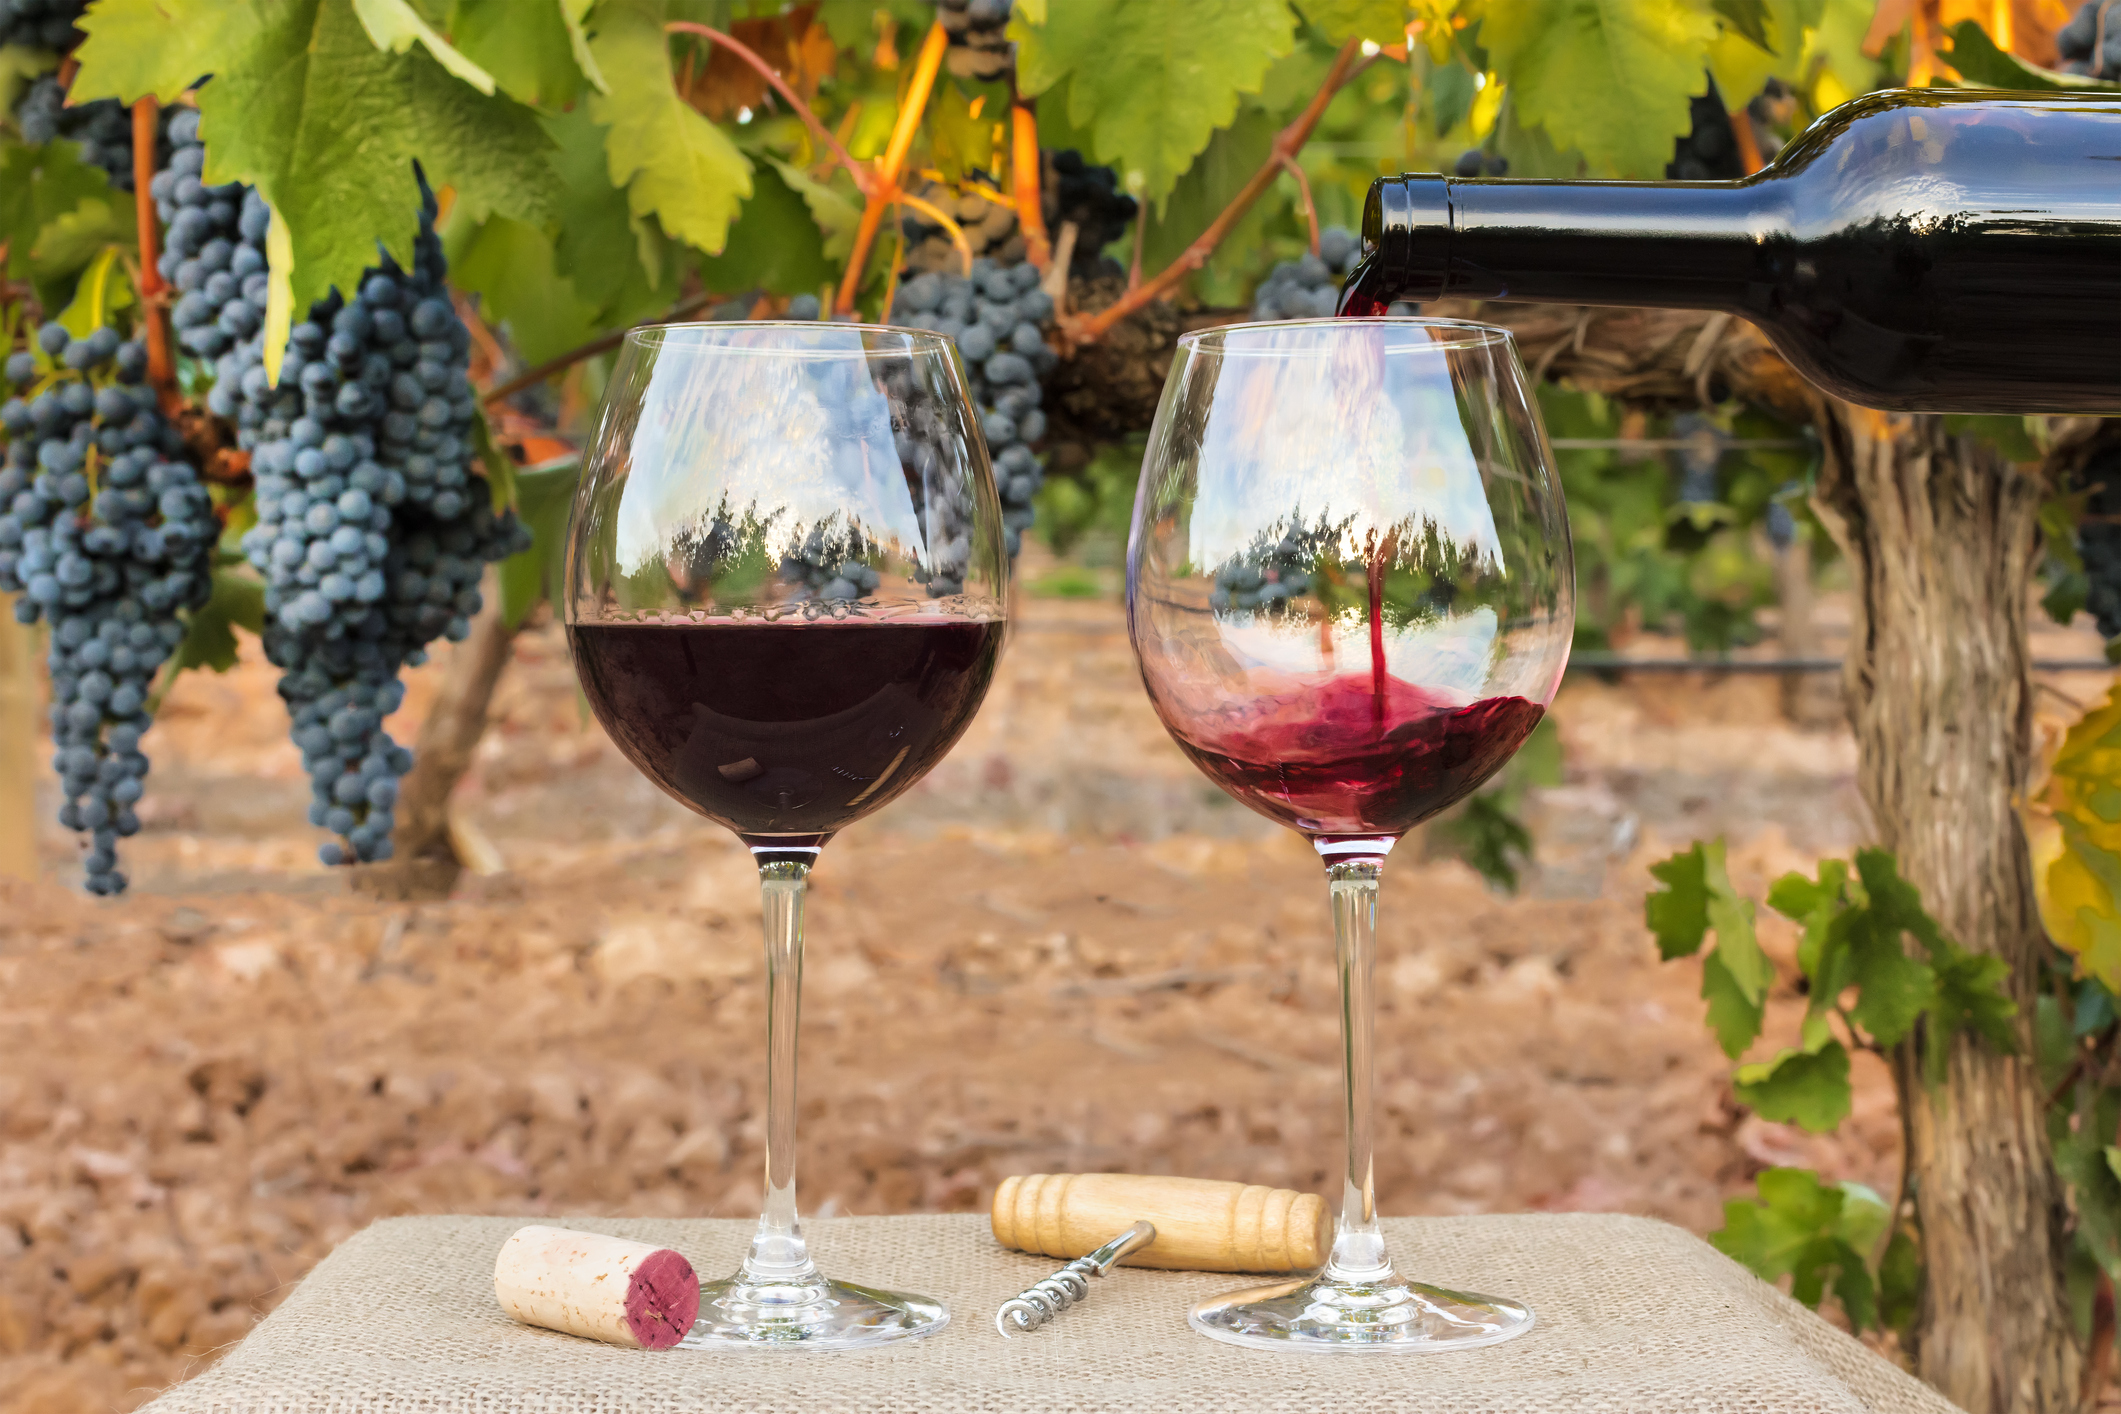 Photo of red wine poured into glasses from bottle on blurred background of a vineyard right before harvest, with hanging branches of grapes. With cork and vintage corkscrew